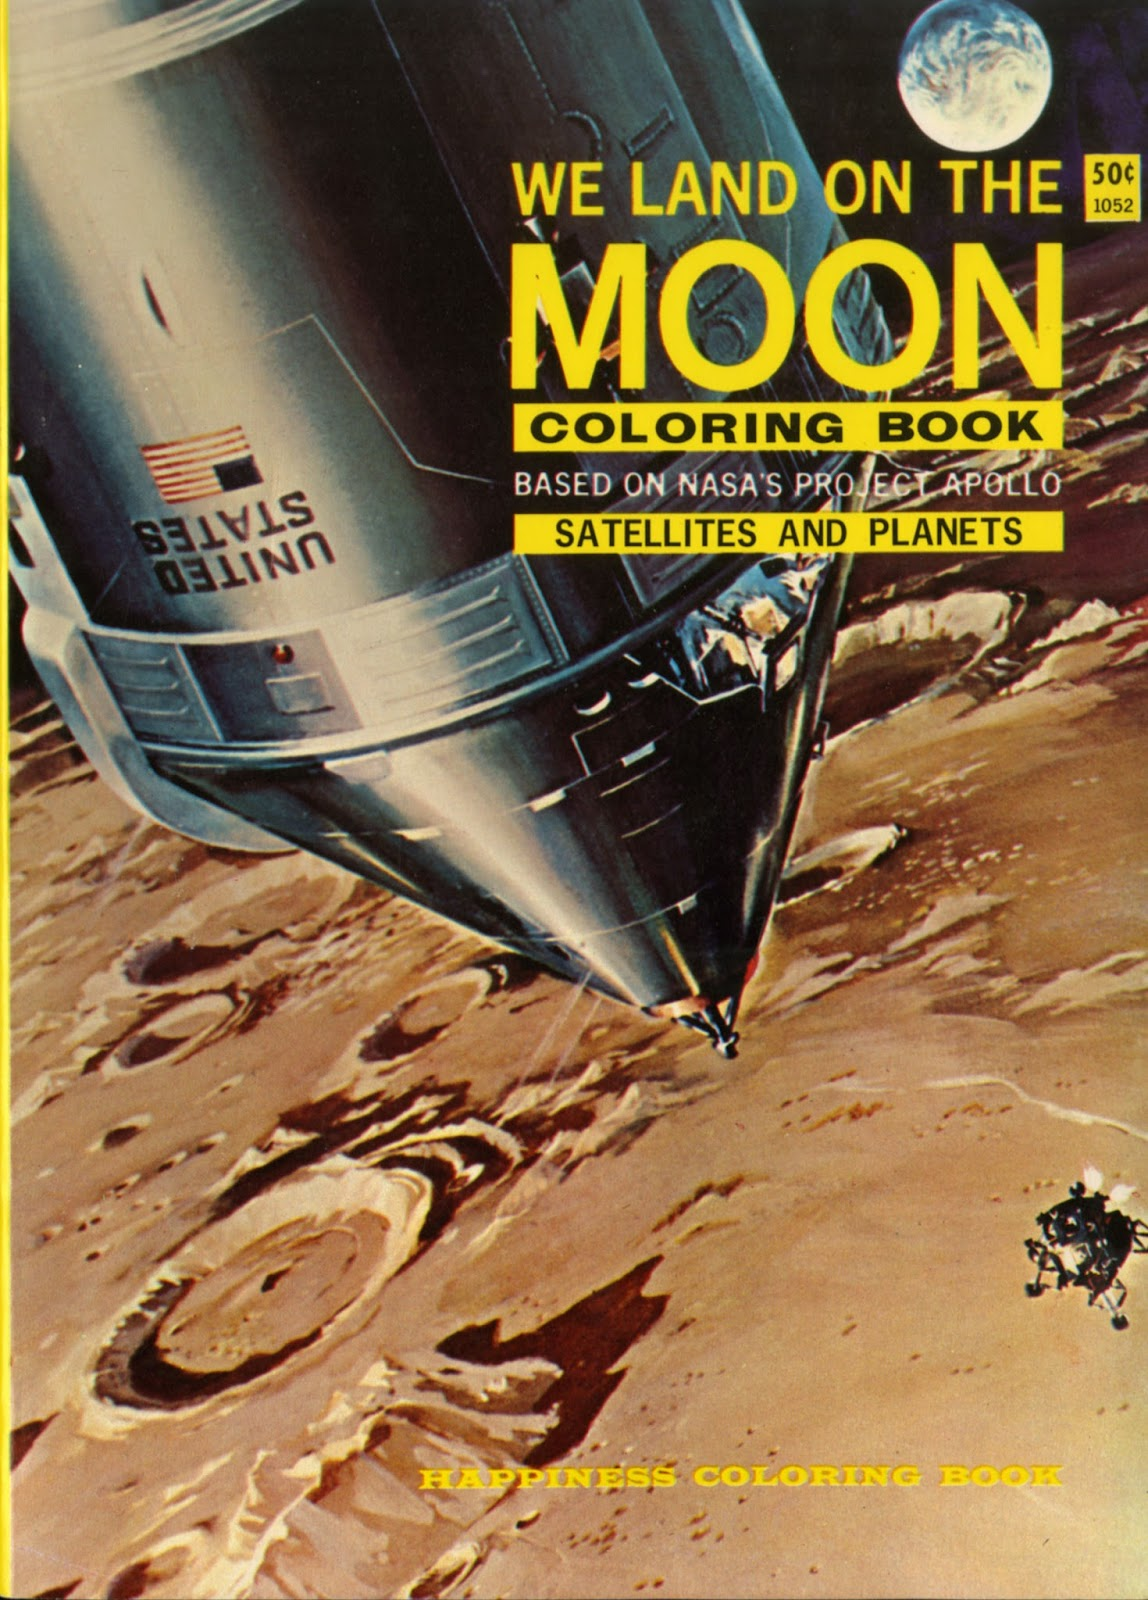 We Land On The Moon Coloring Book Based NASAa Project Apollo Satellites And Planets 1969